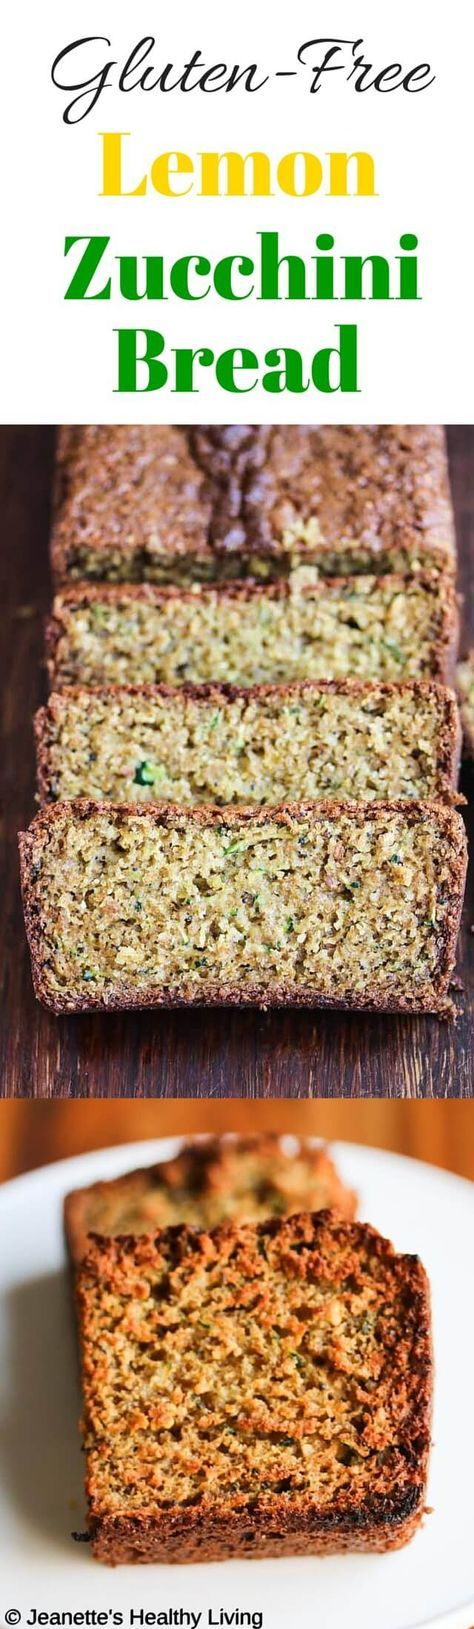 Gluten Free Lemon Zucchini Bread - this beautifully scented quick bread makes a healthy snack or breakfast bread. Made with almond flour, oat flour and flax seeds, it's nutritious and delicious. ~ http://jeanetteshealthyliving.com